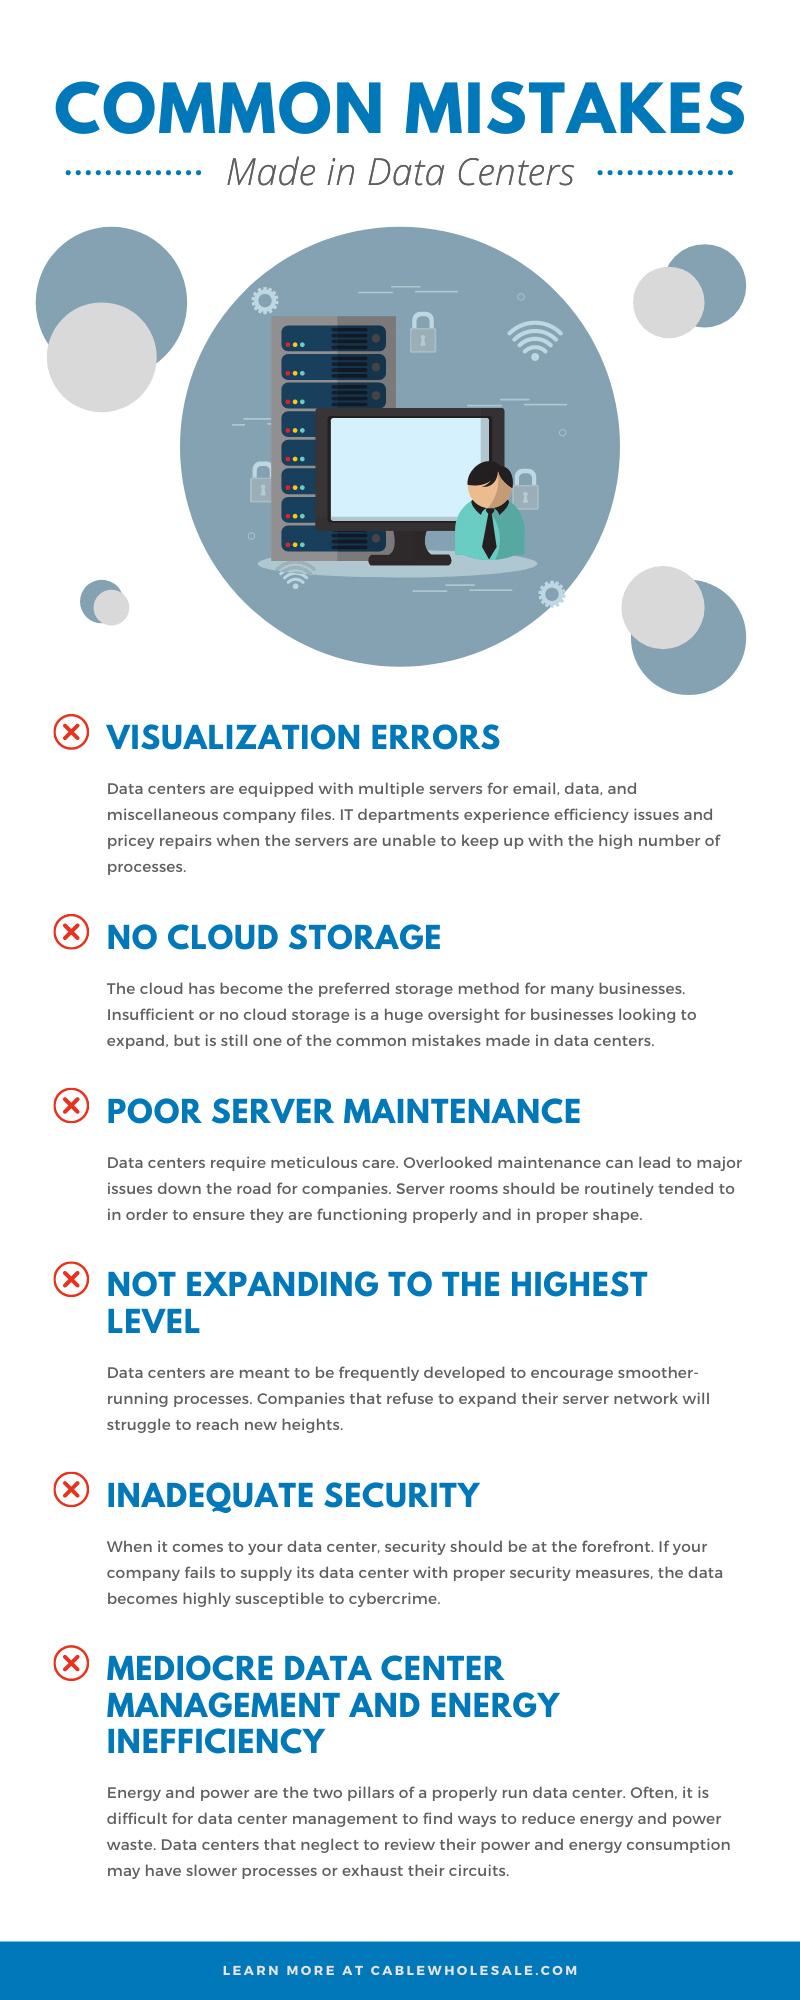 Common Mistakes Made in Data Centers